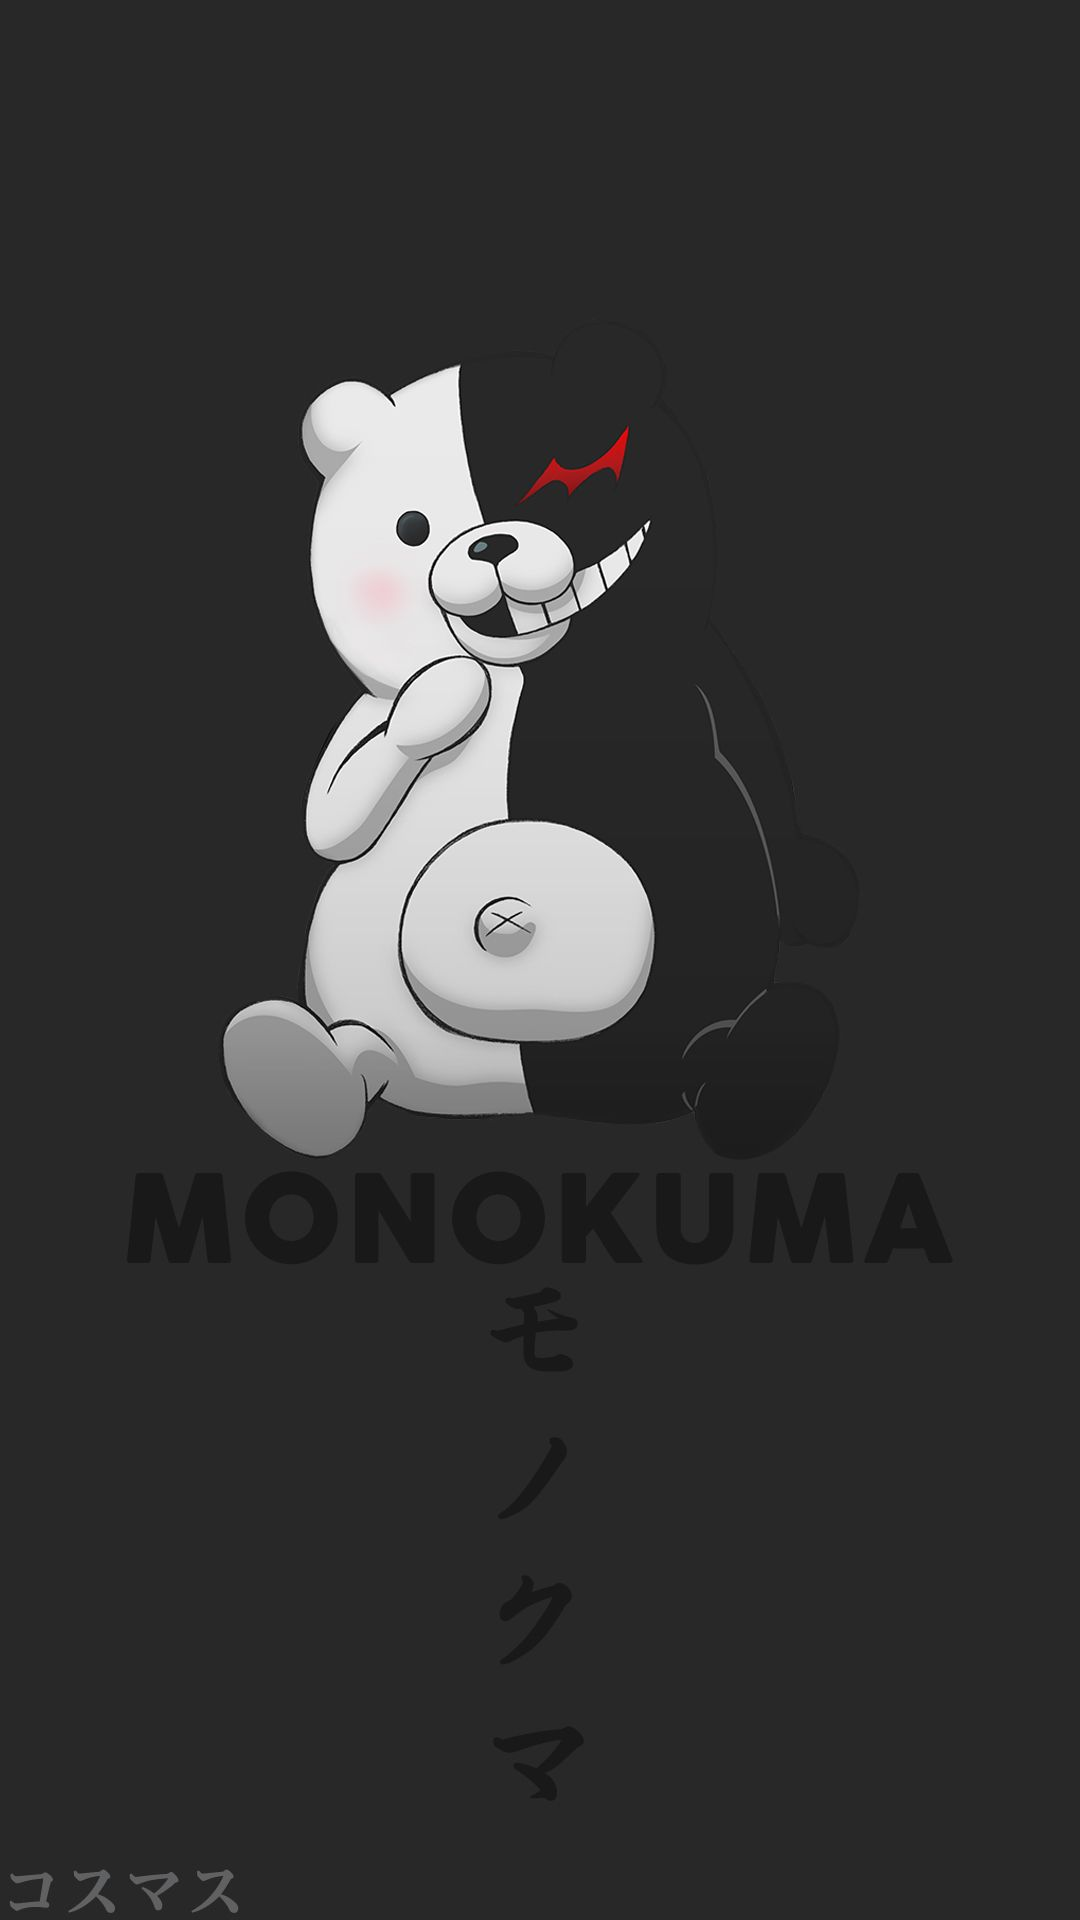 Pin by Ar on anime Danganronpa monokuma, Manga anime, Anime